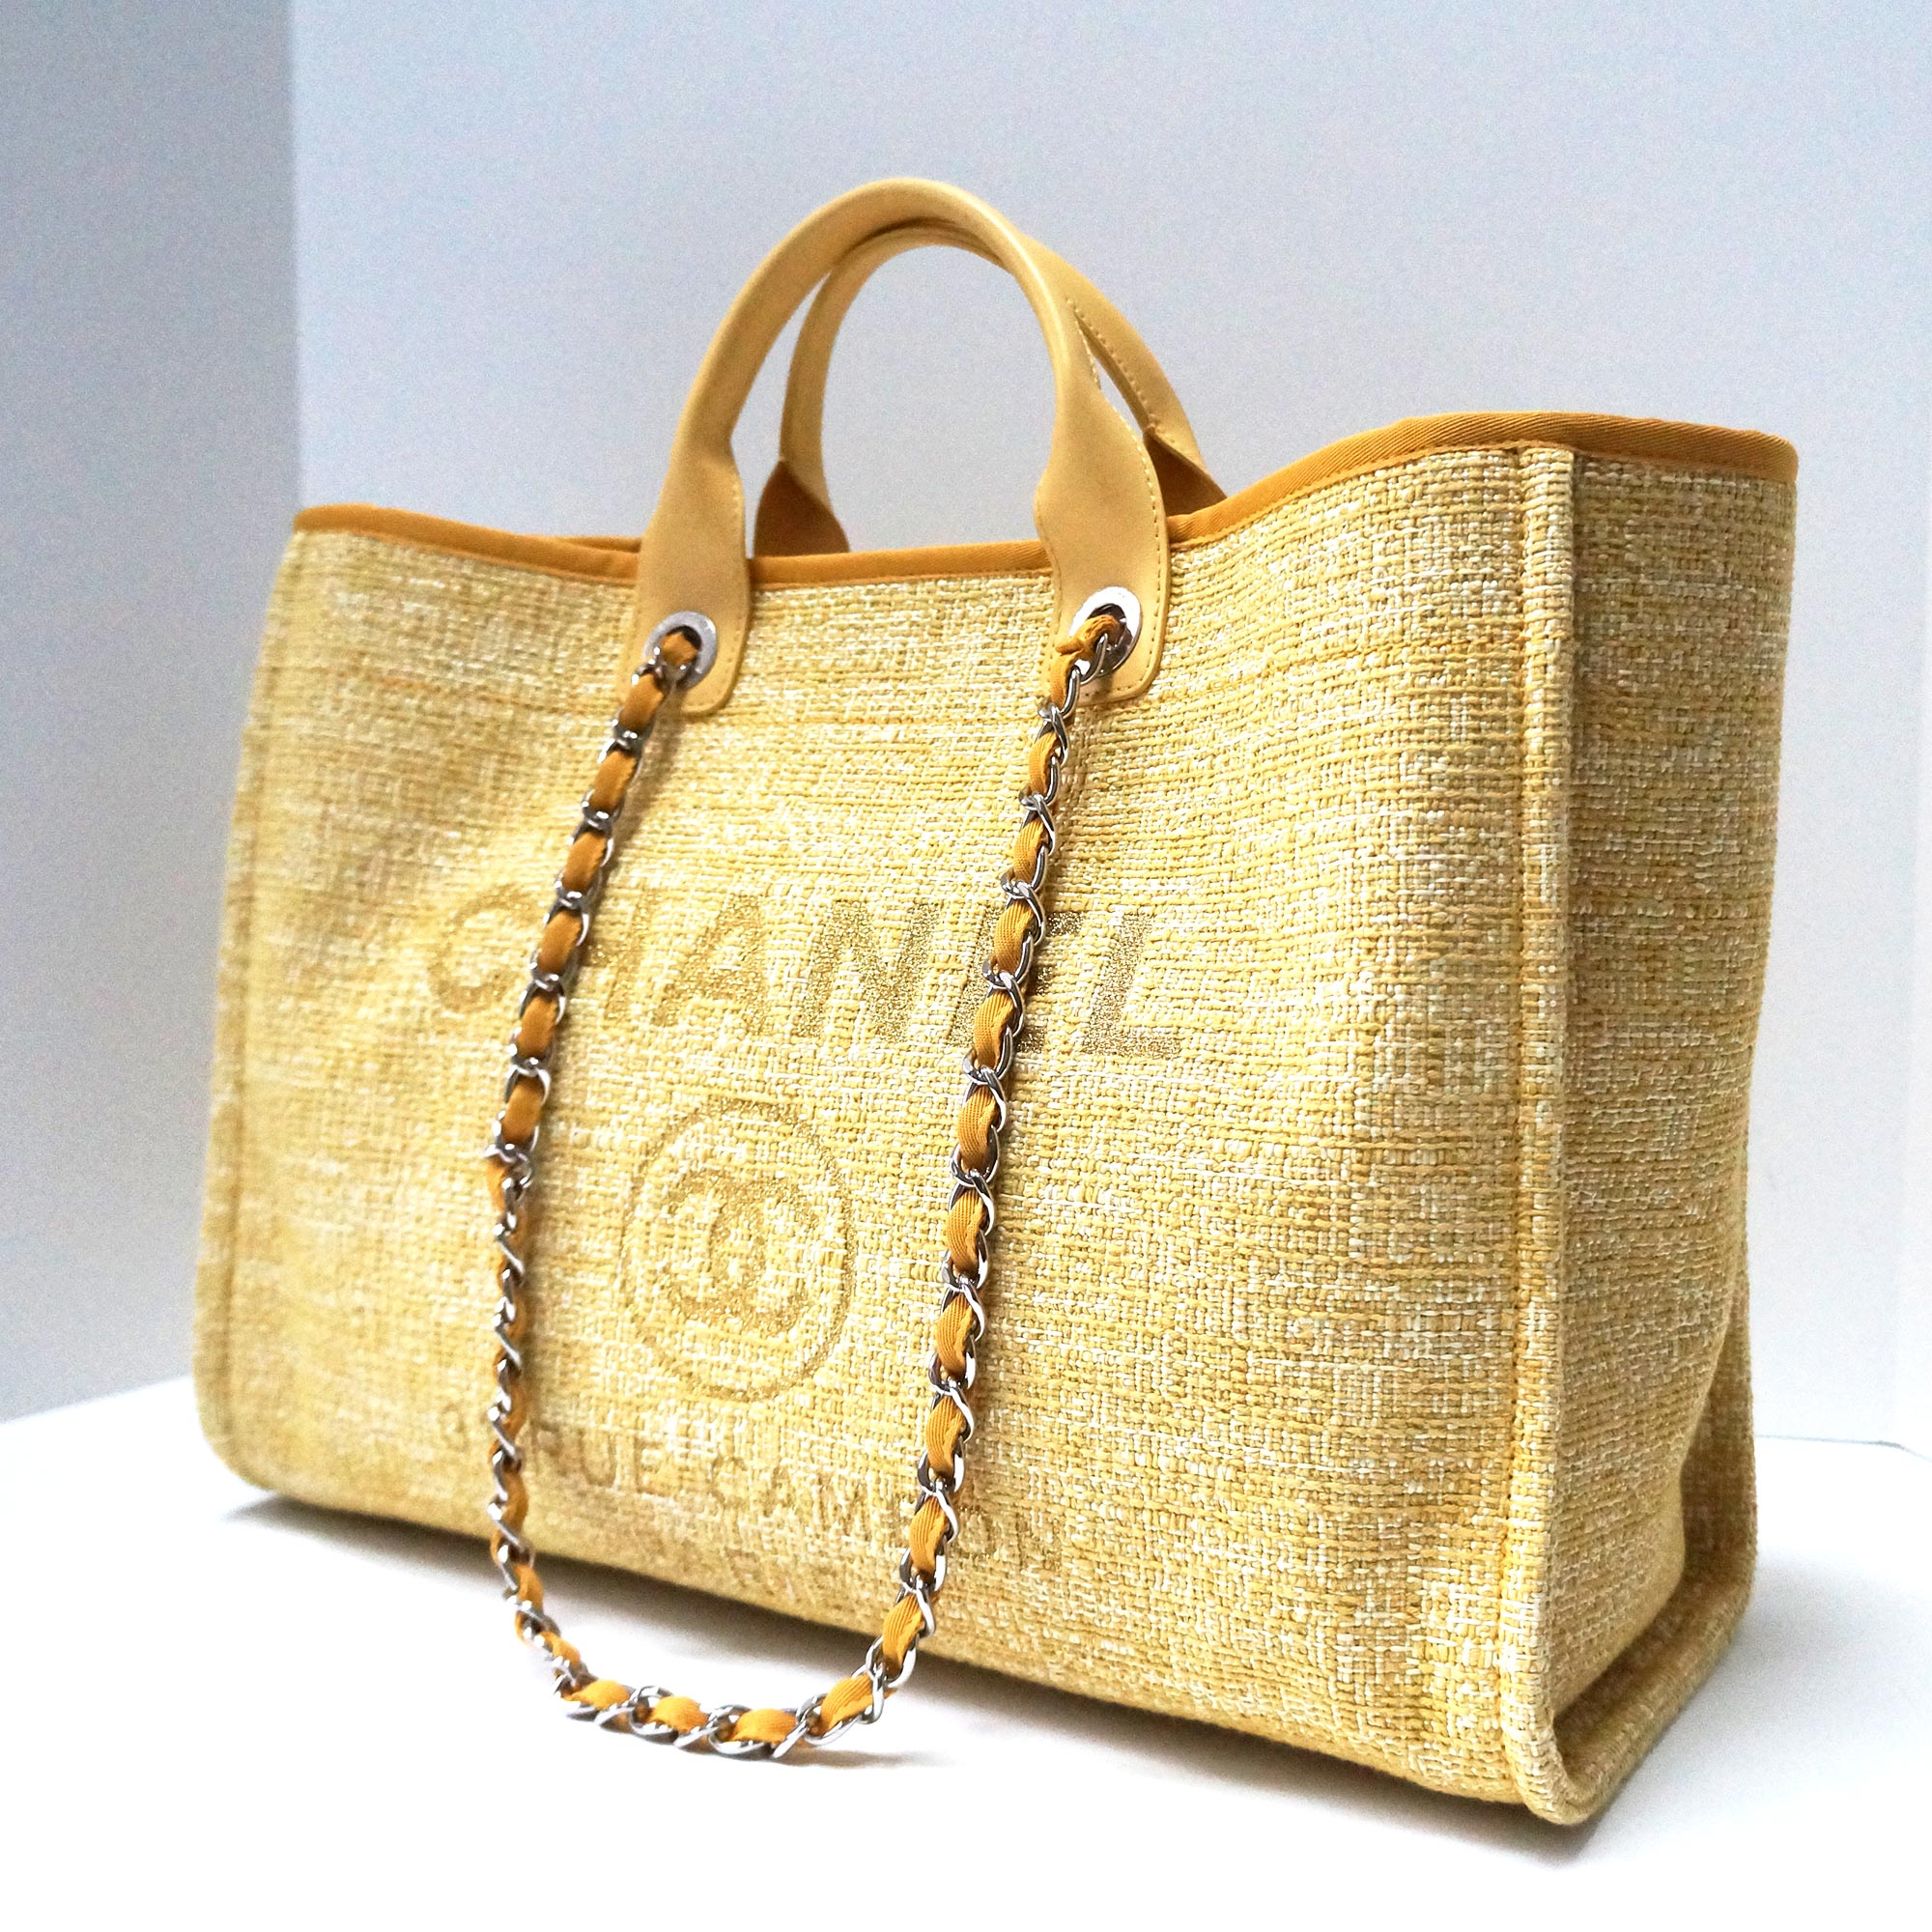 3fe95564f4bc CHANEL 2018 Limited Edition Grande Deauville Shopper Tote Bag Gold/Pale  Yellow